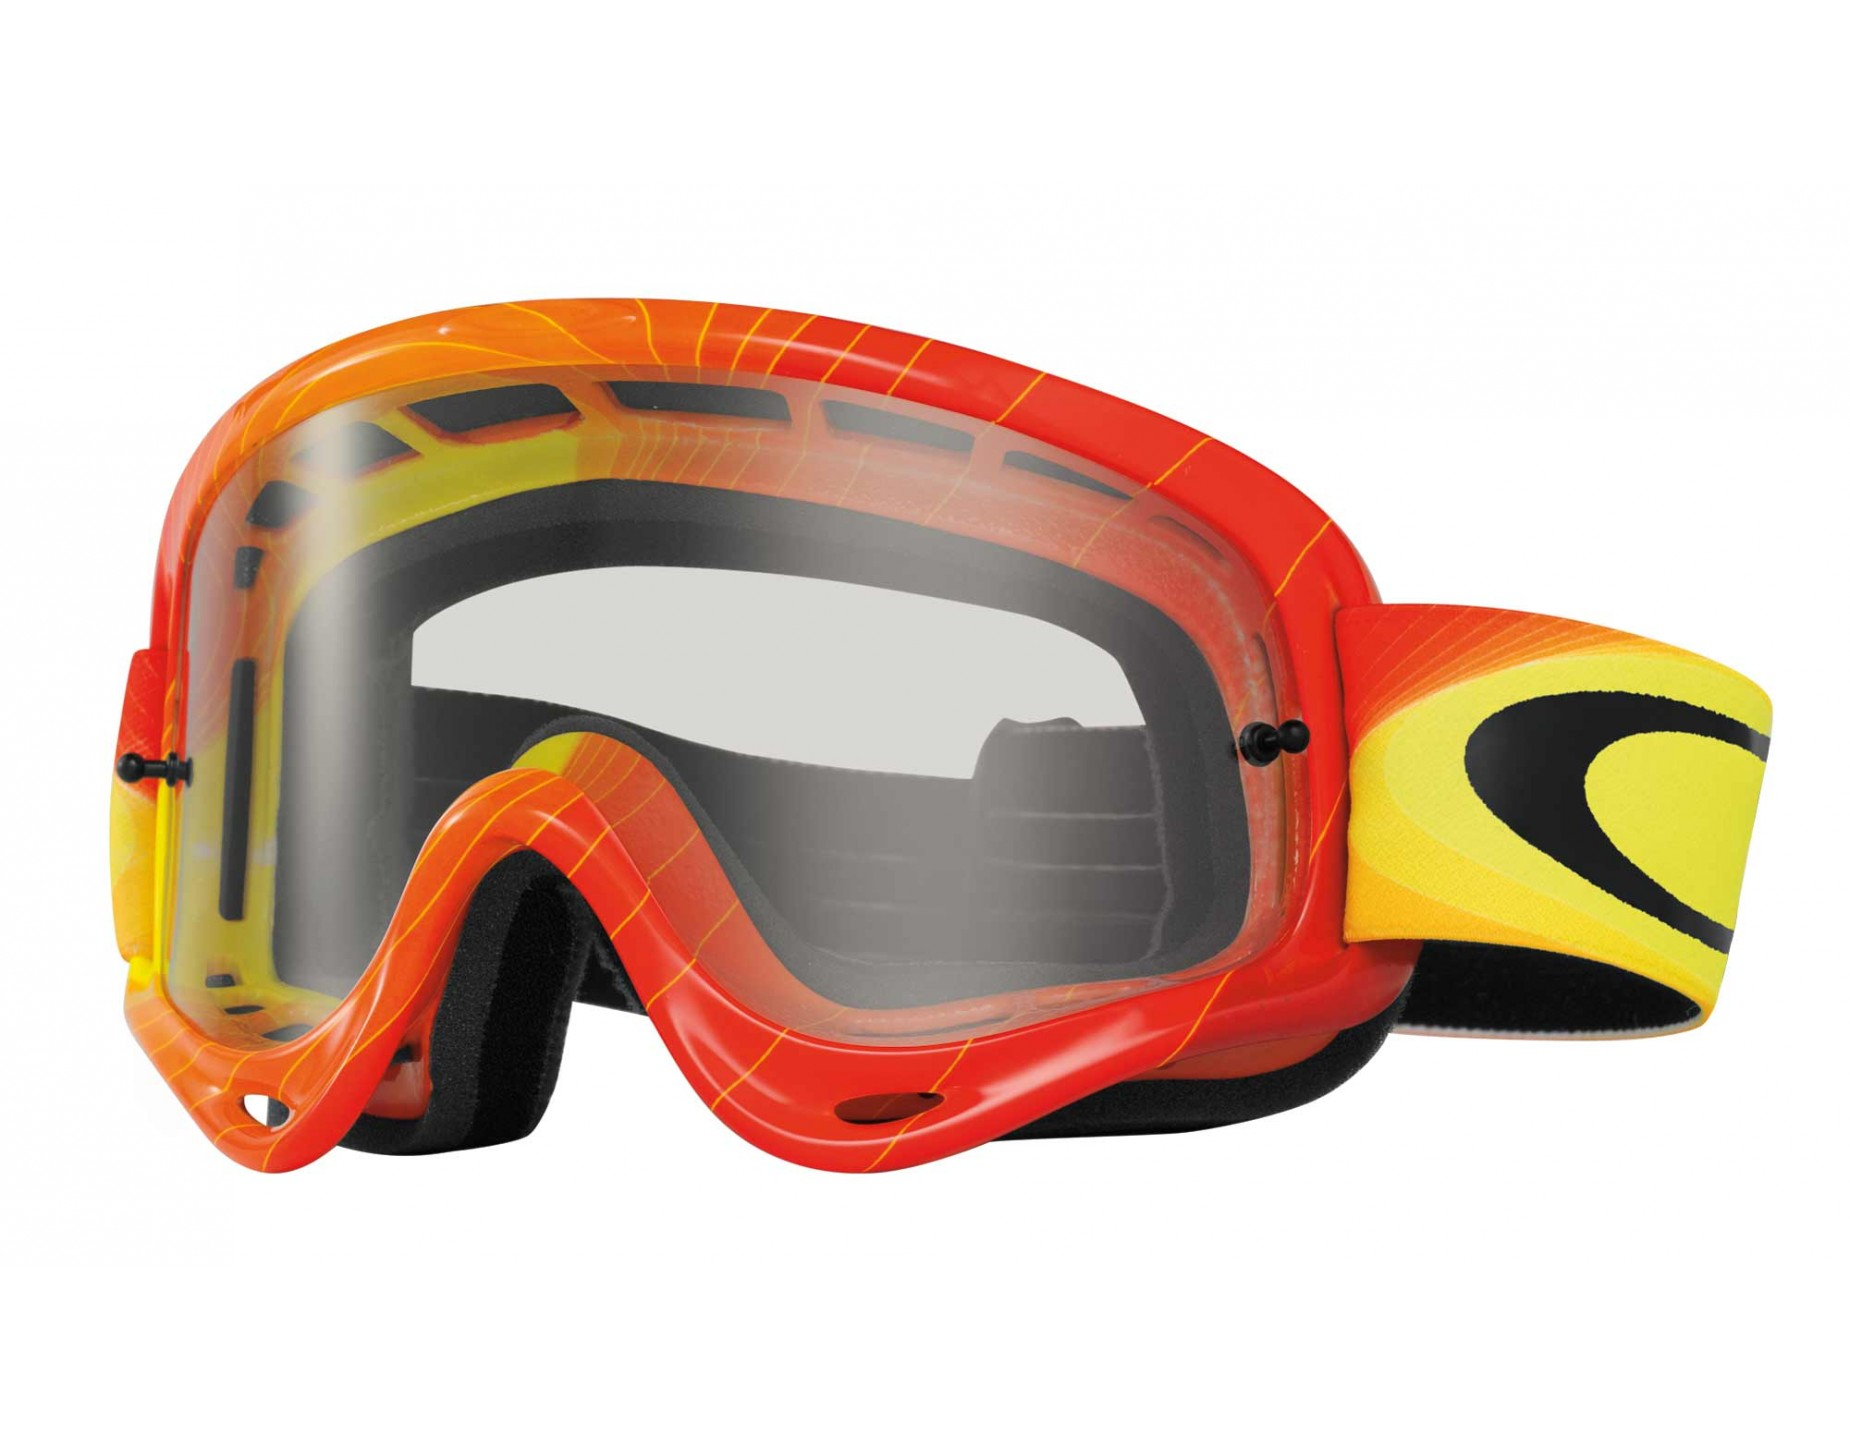 oakley o frame mx goggles swell fade red yellowclear